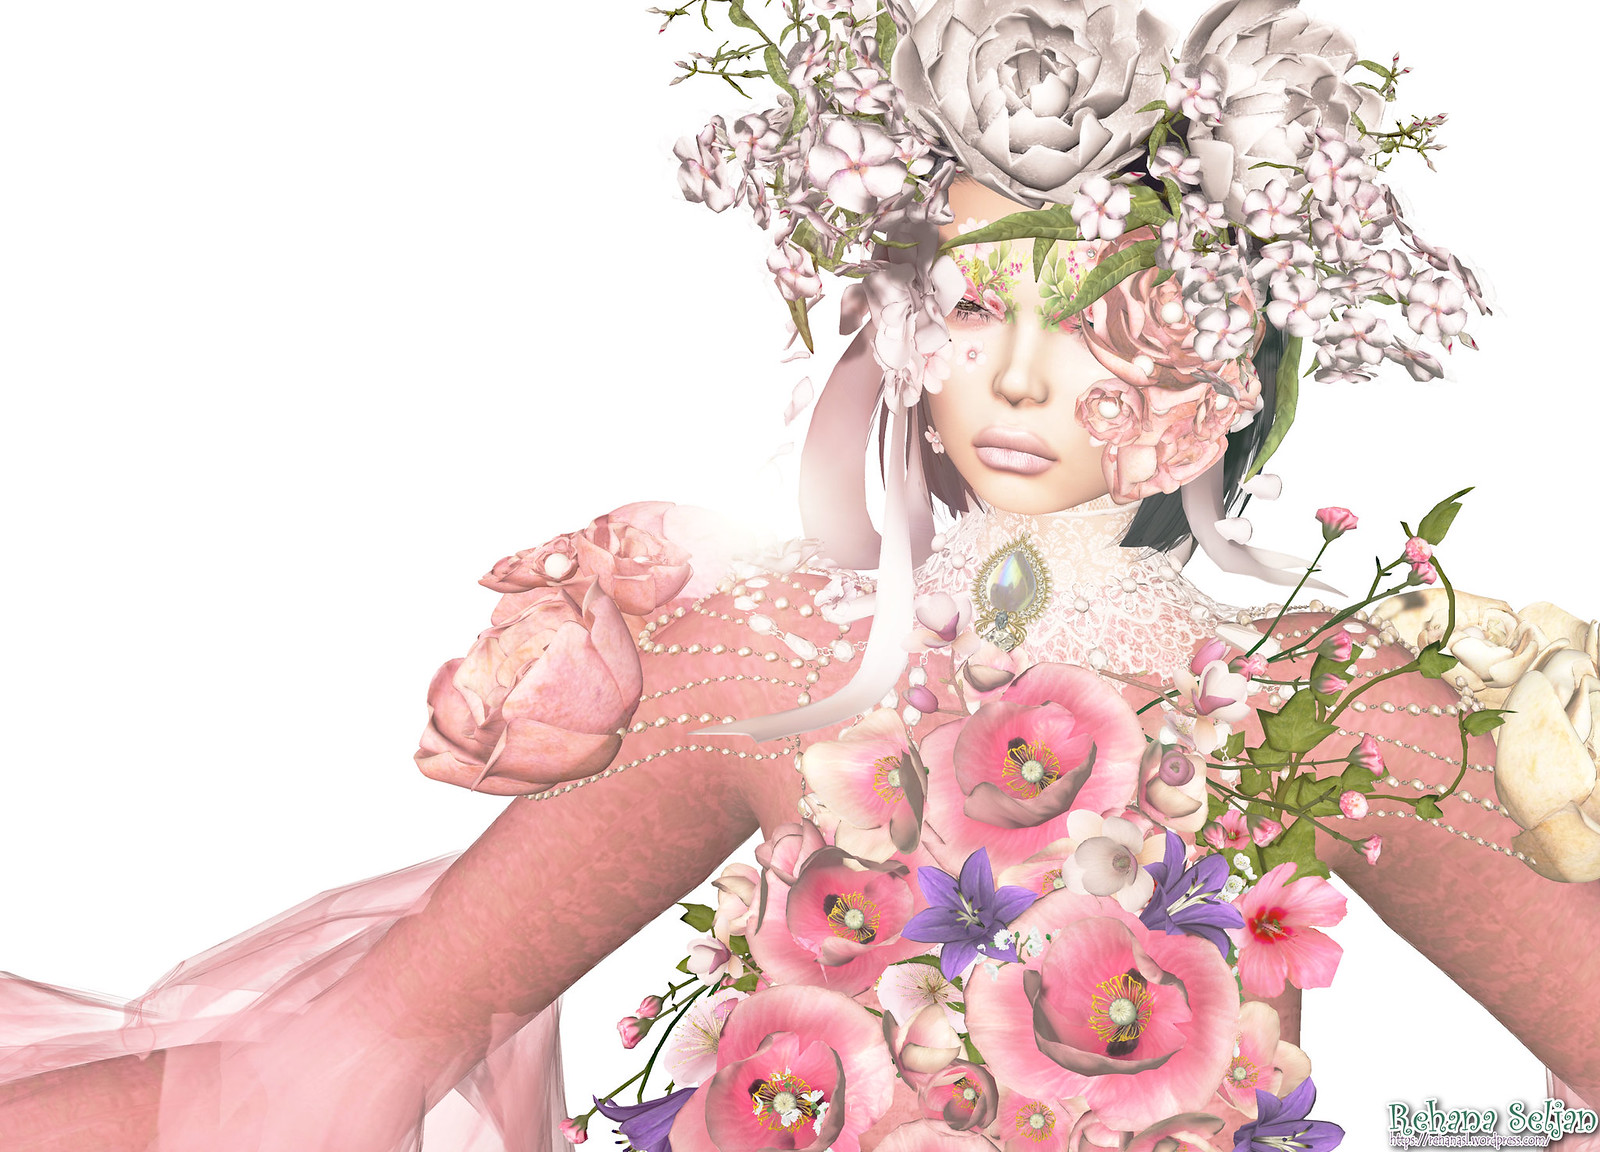 MISS SL 2018 - 1st Runway Challenge - VOGUE